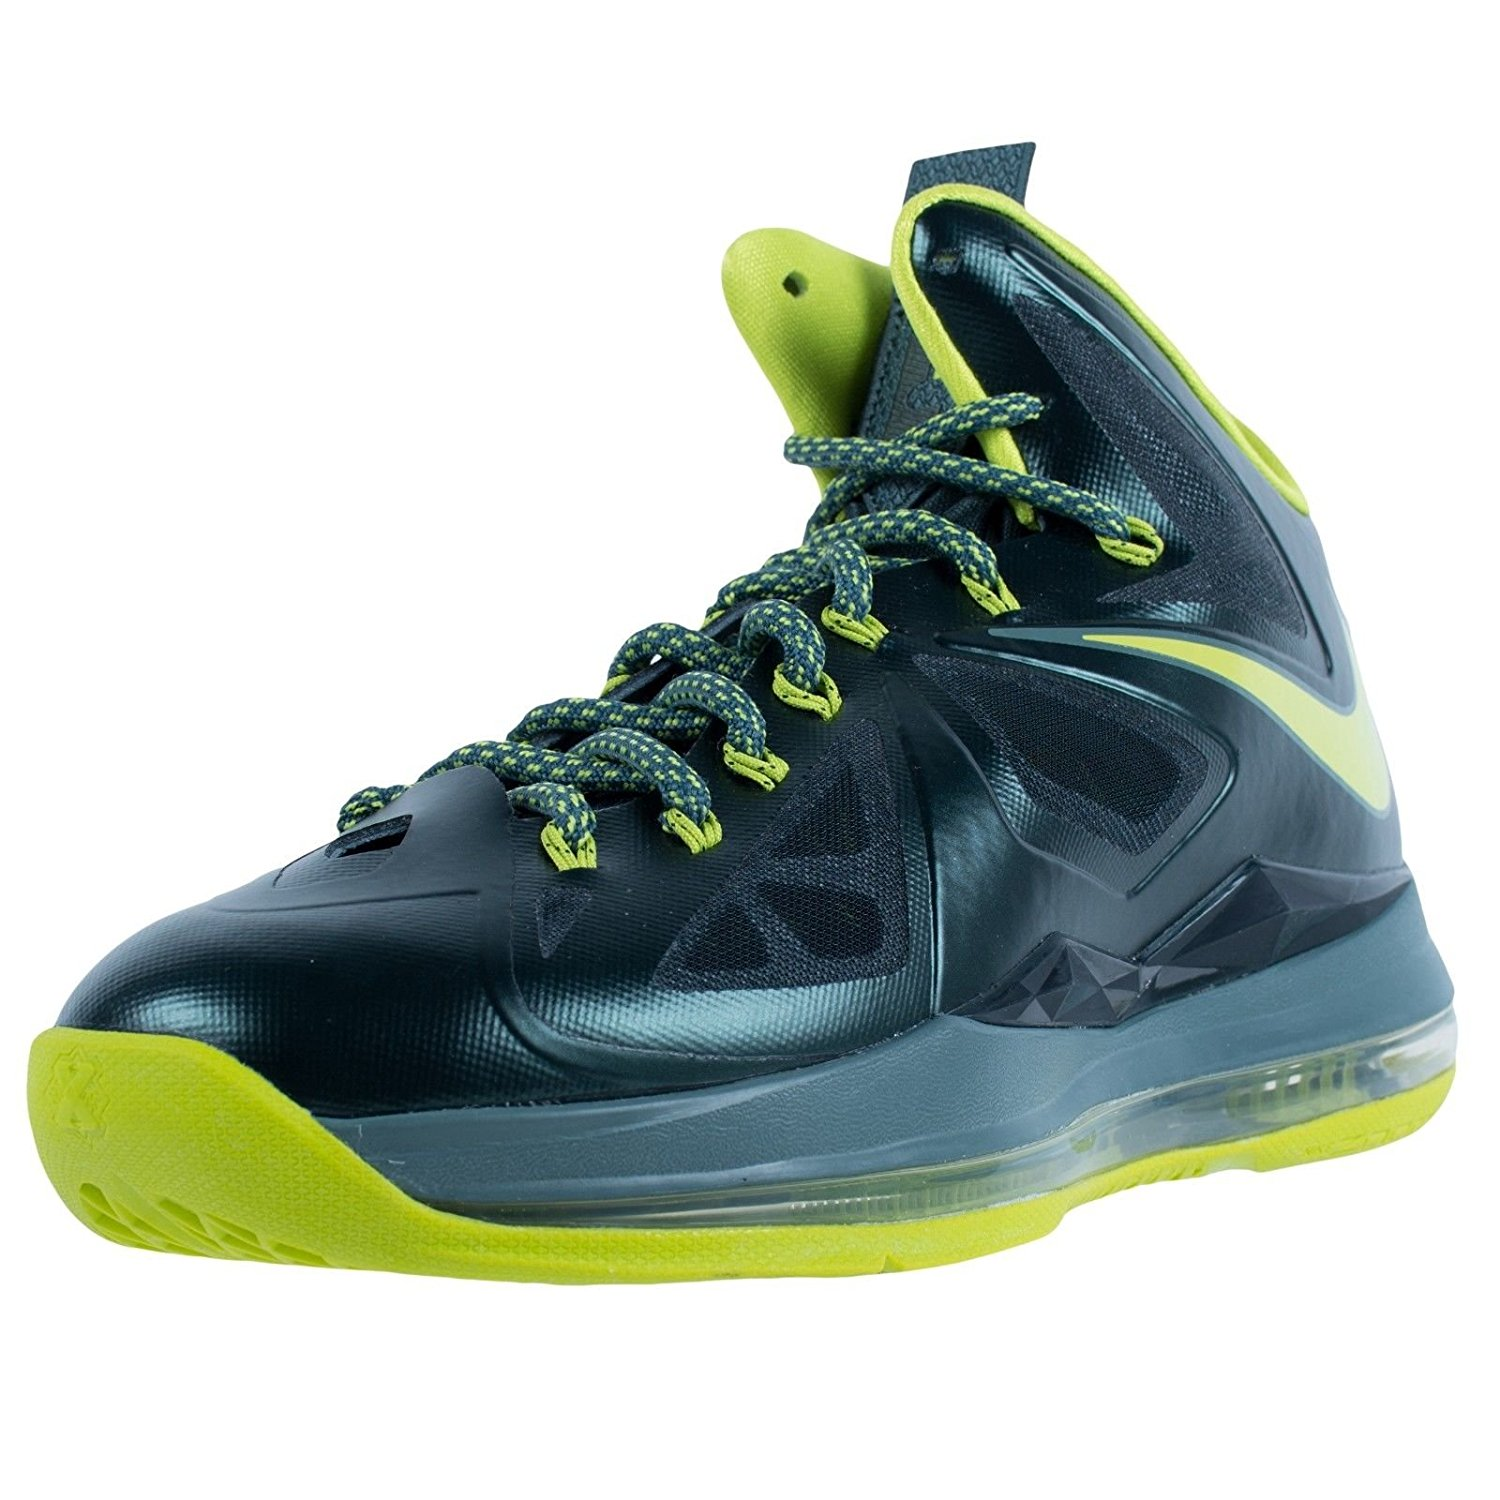 d830e0ba031 Get Quotations · NIKE LEBRON X BASKETBALL SNEAKERS DUNKMAN SEAWEED ATOMIC  GREEN 541100 300 SZ 7.5